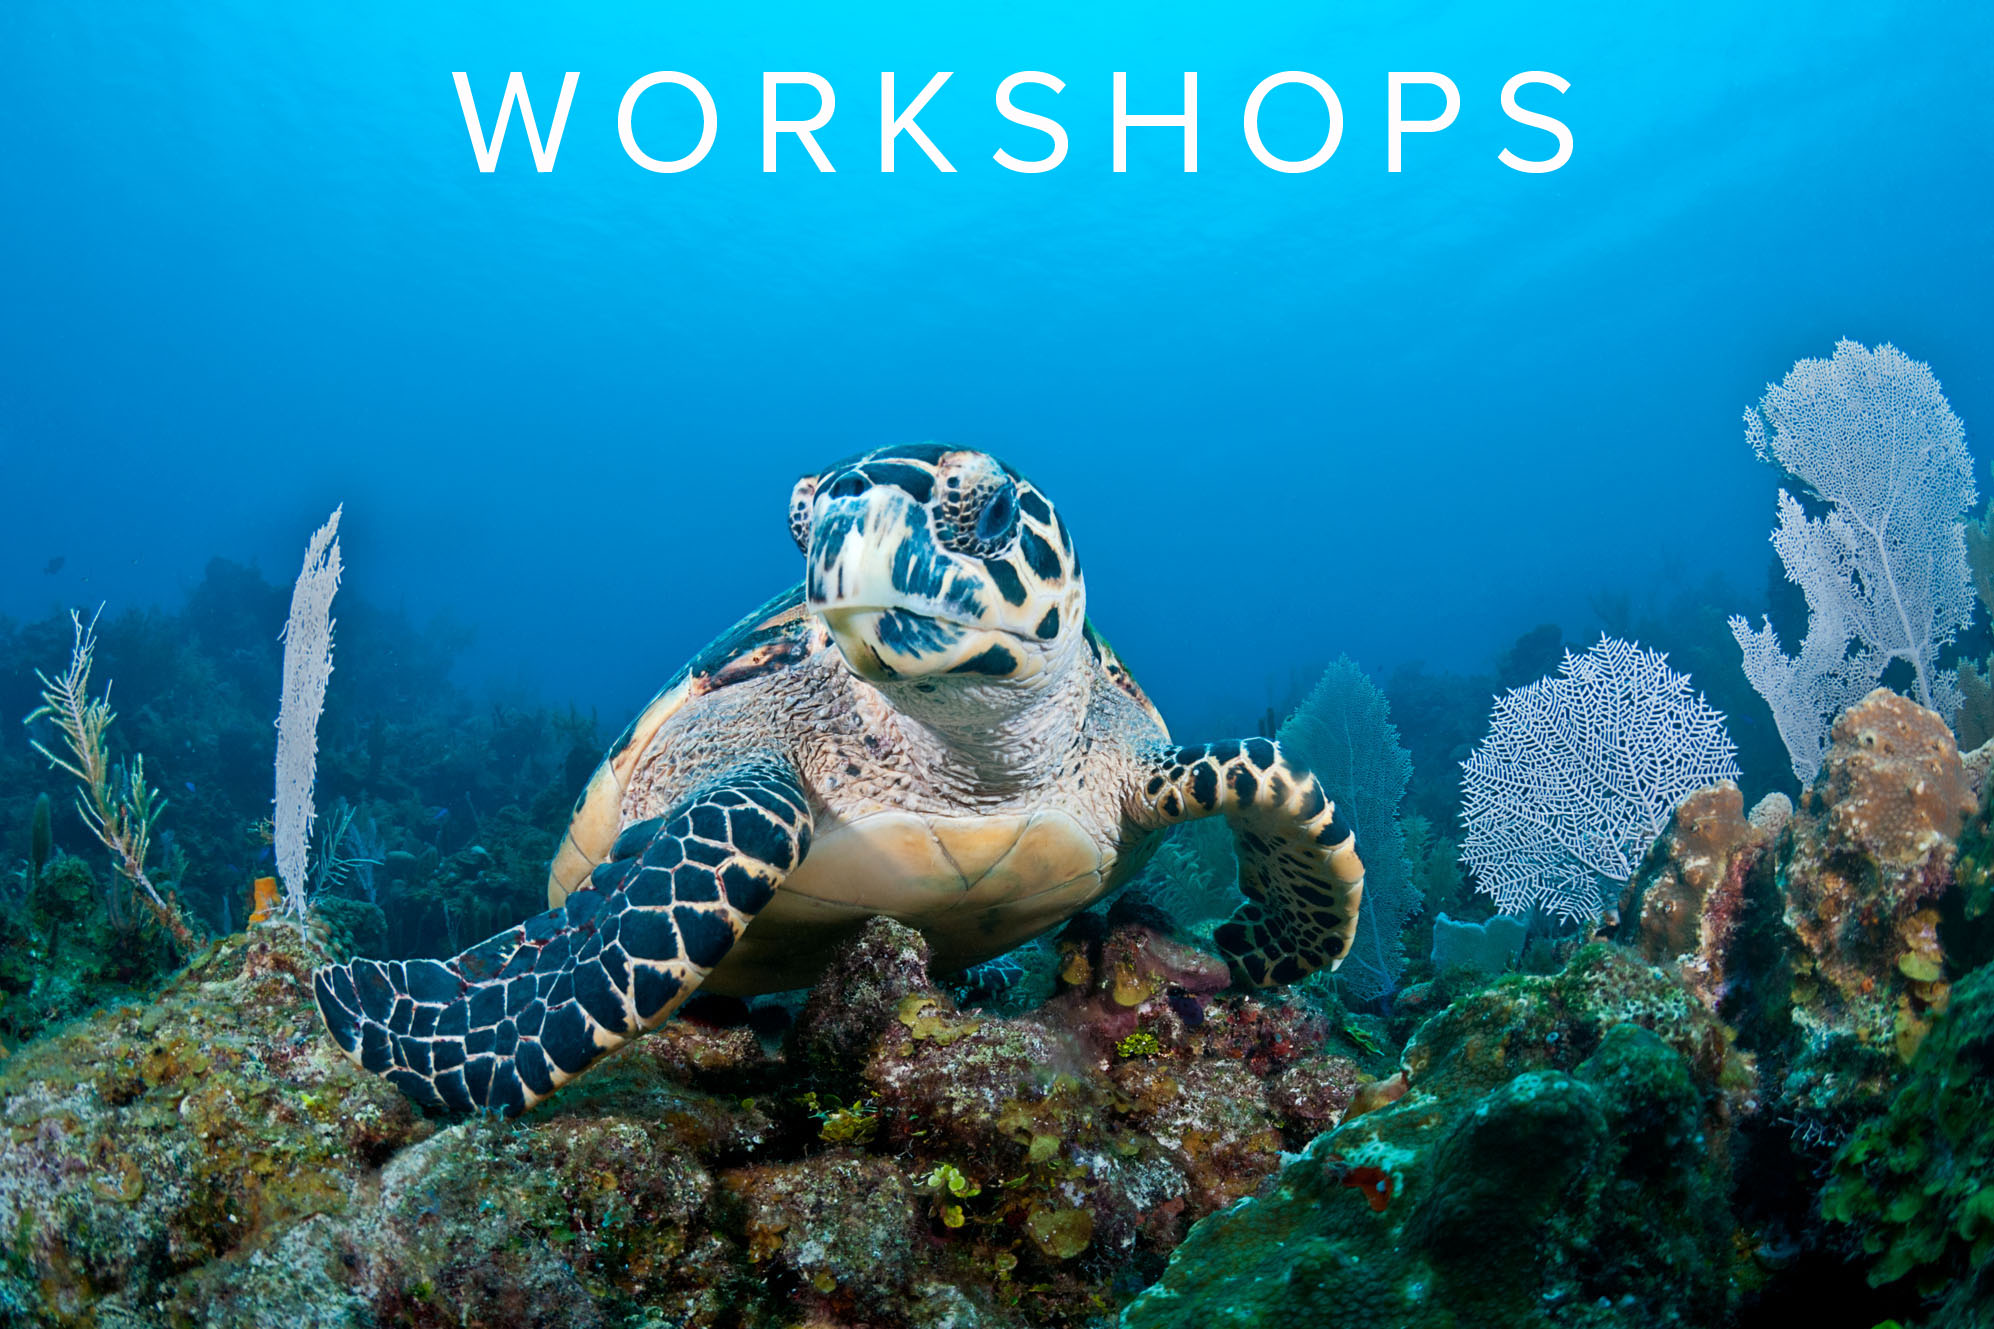 UNDERWATER PHOTOGRAPHY WORKSHOPS